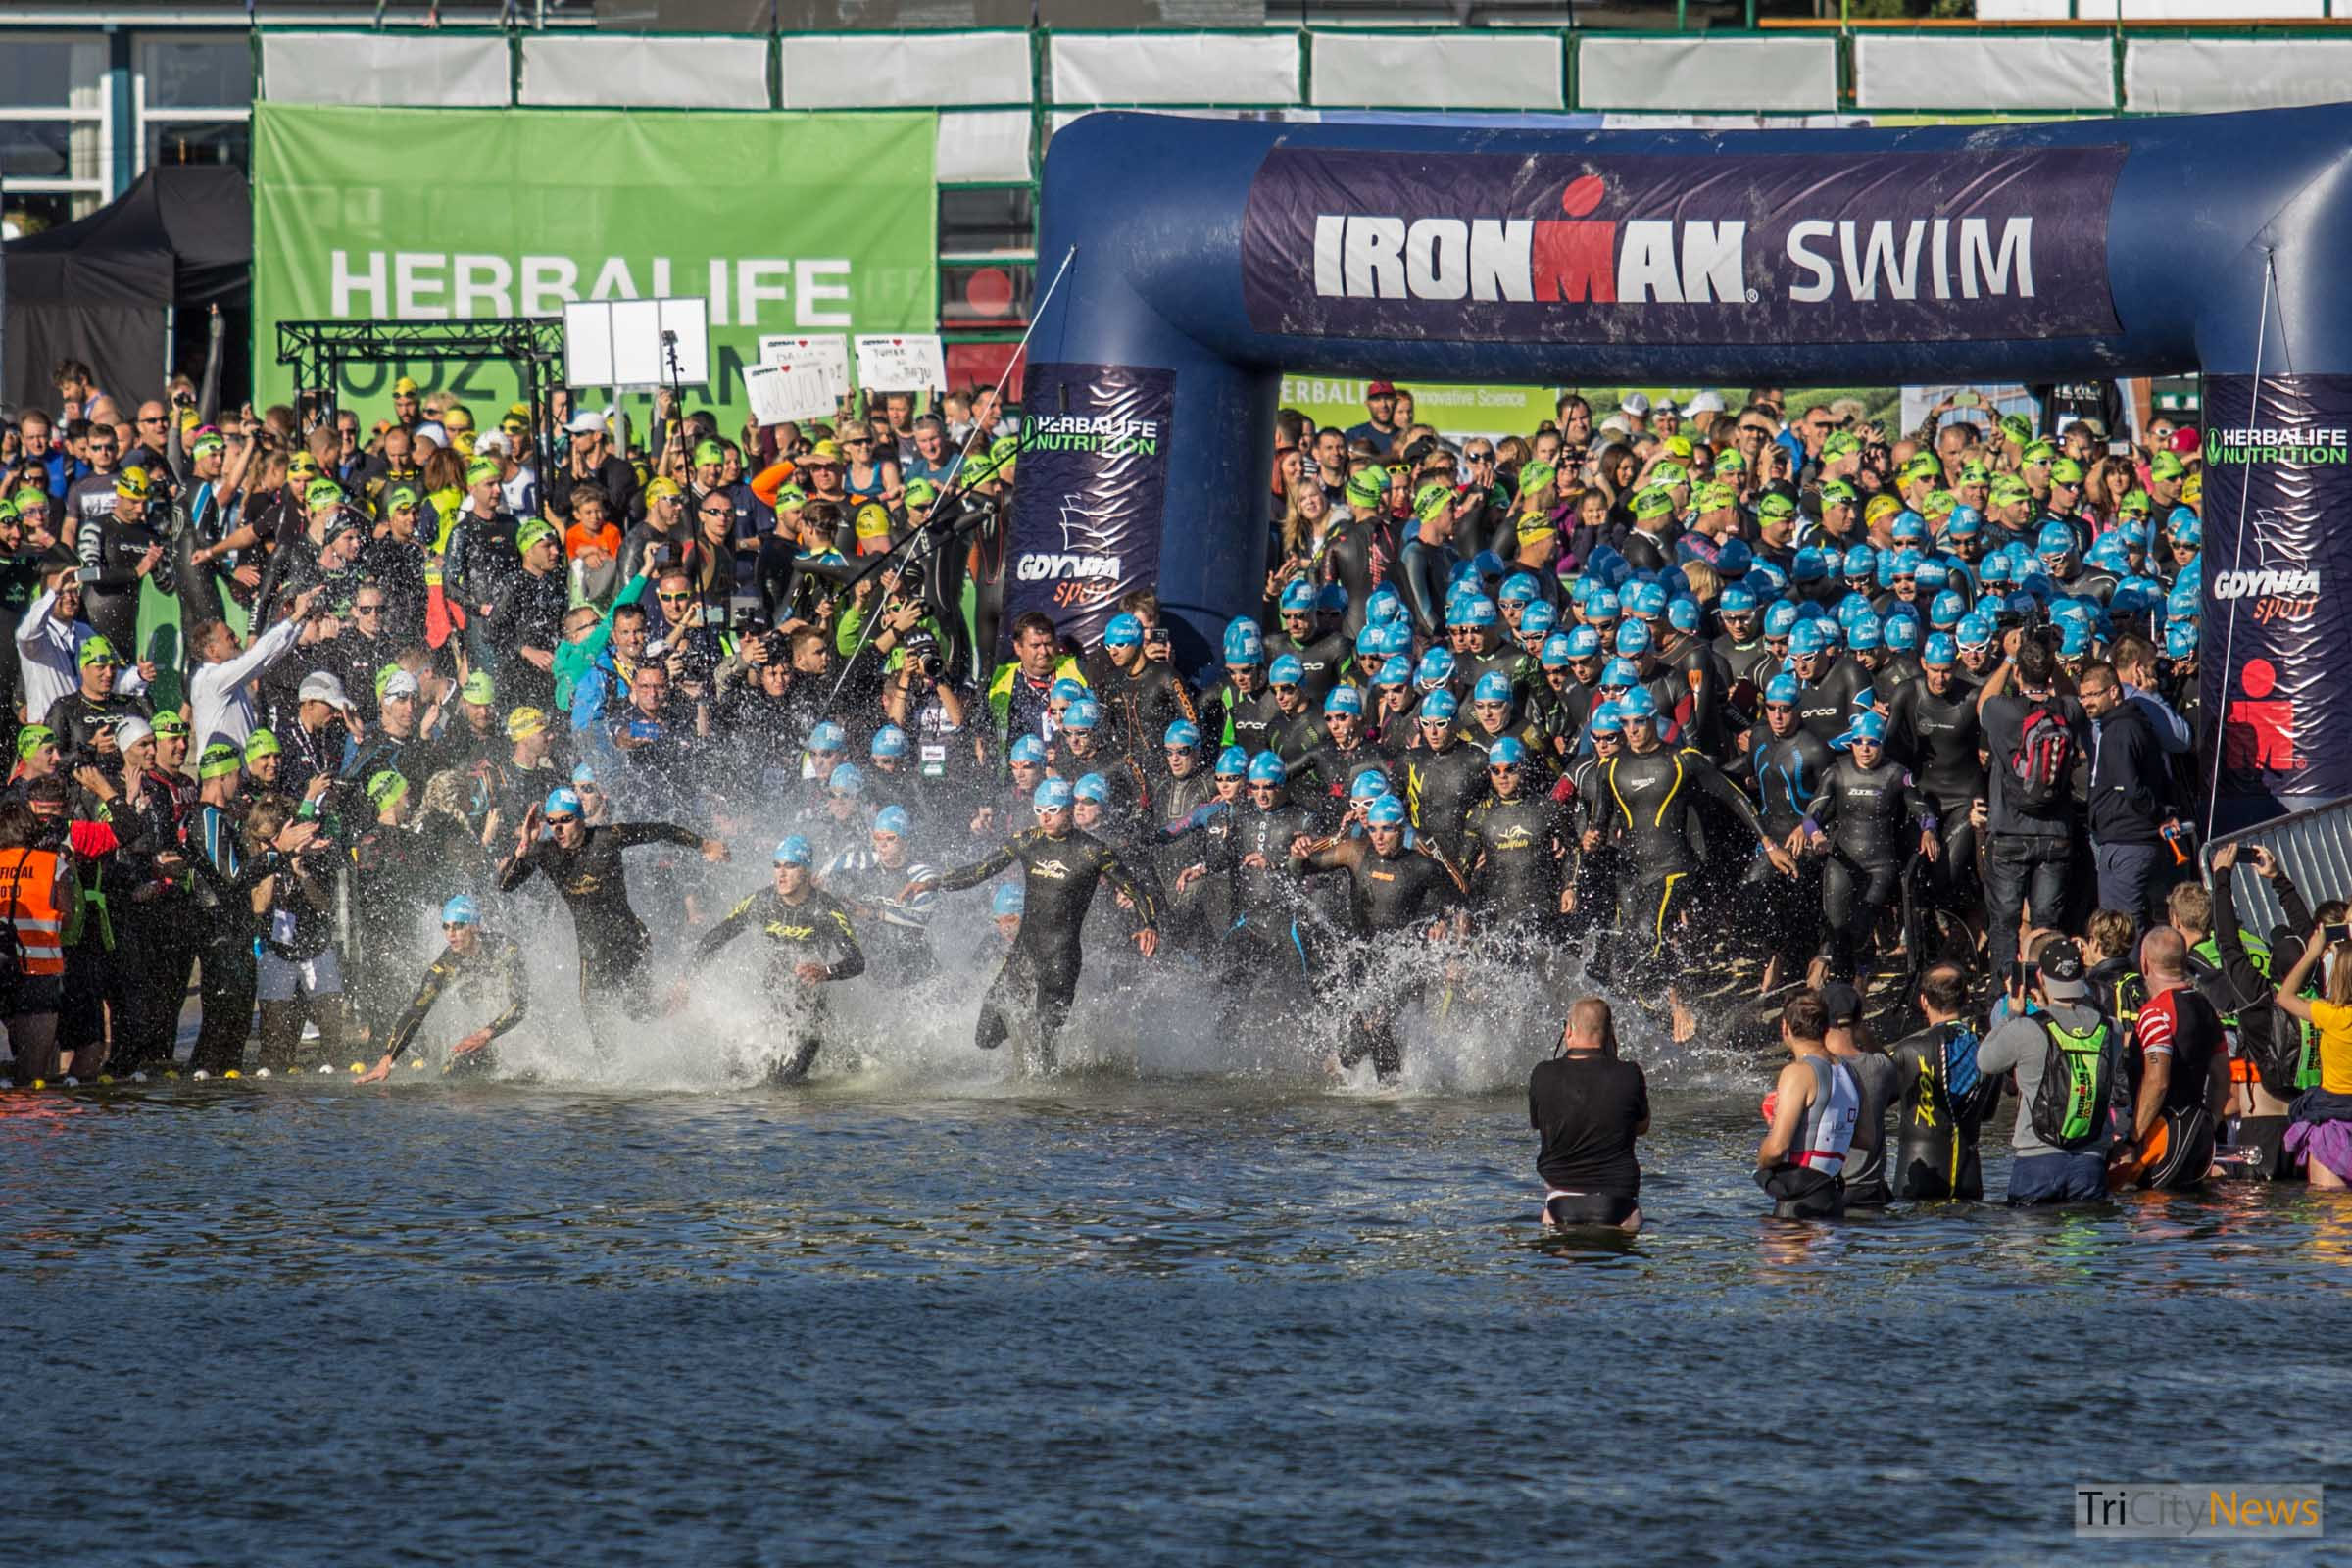 Herbalife Ironman Triathlon Gdynia 2016, photo: Jakub Woźniak/Tricity News